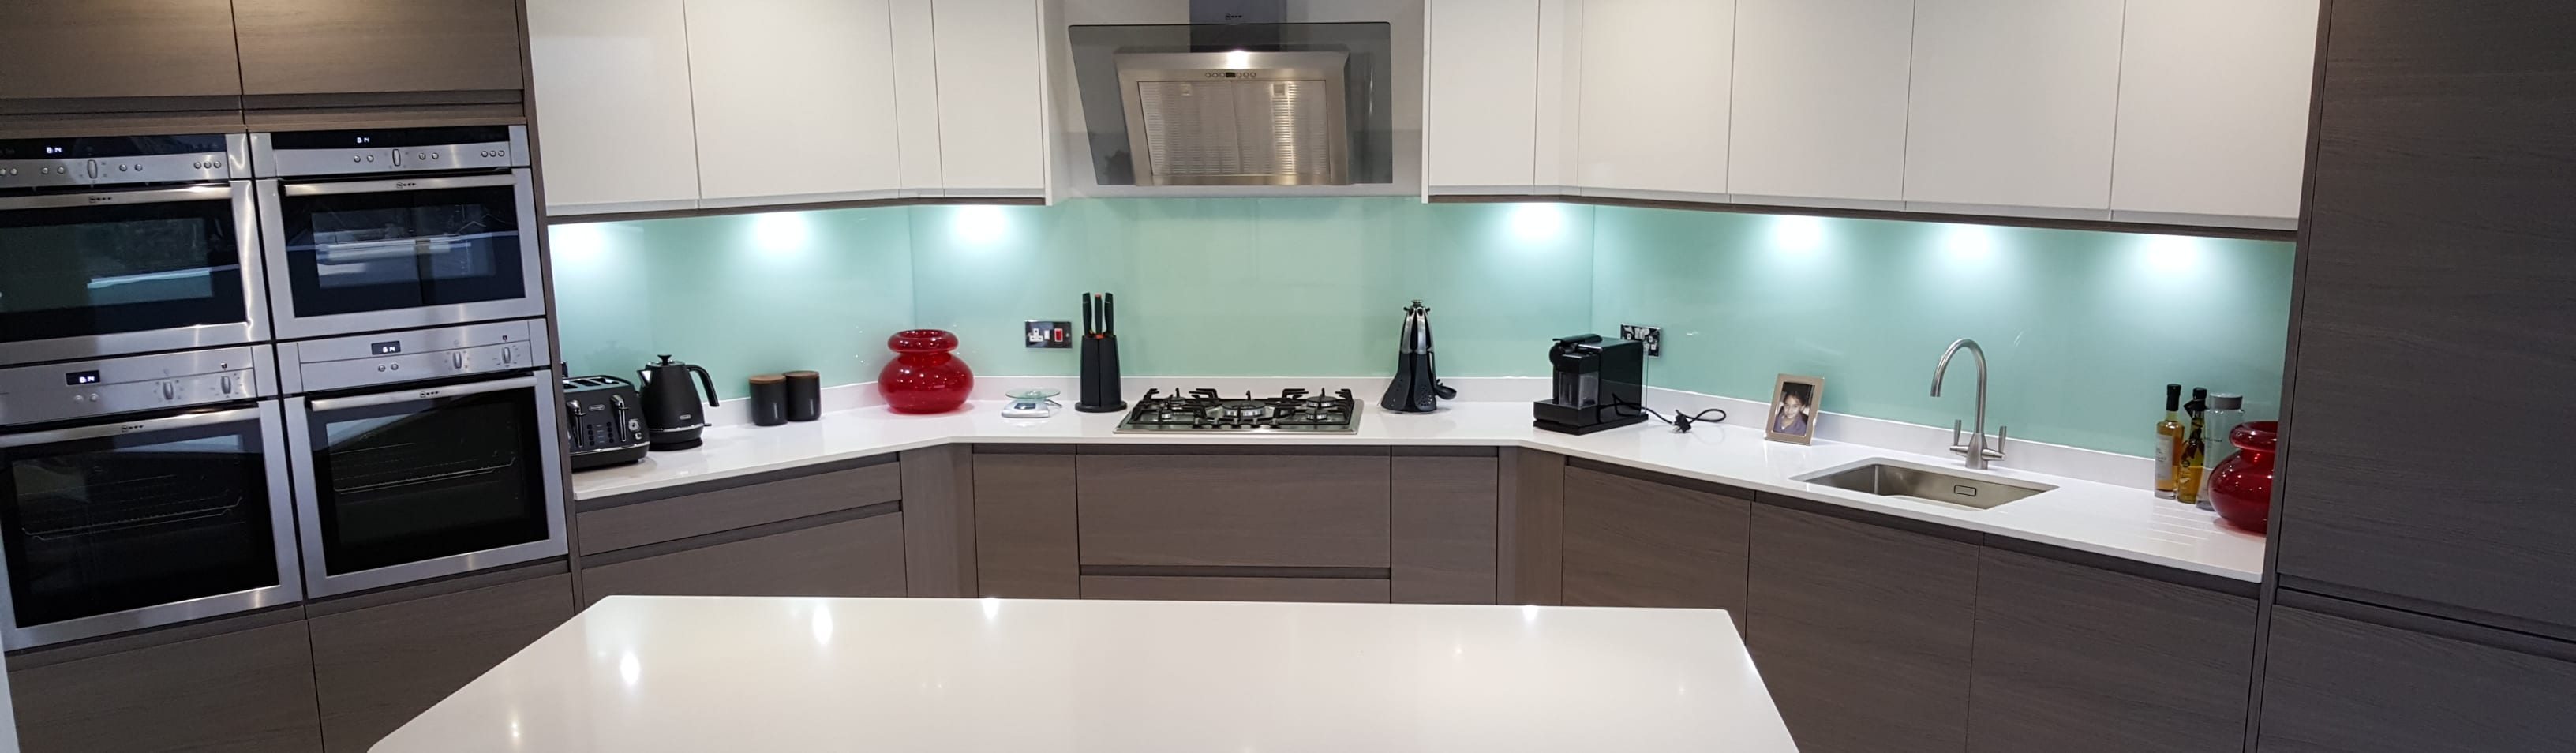 Meridien Interiors Ltd: Kitchen Planners in Wimborne | homify